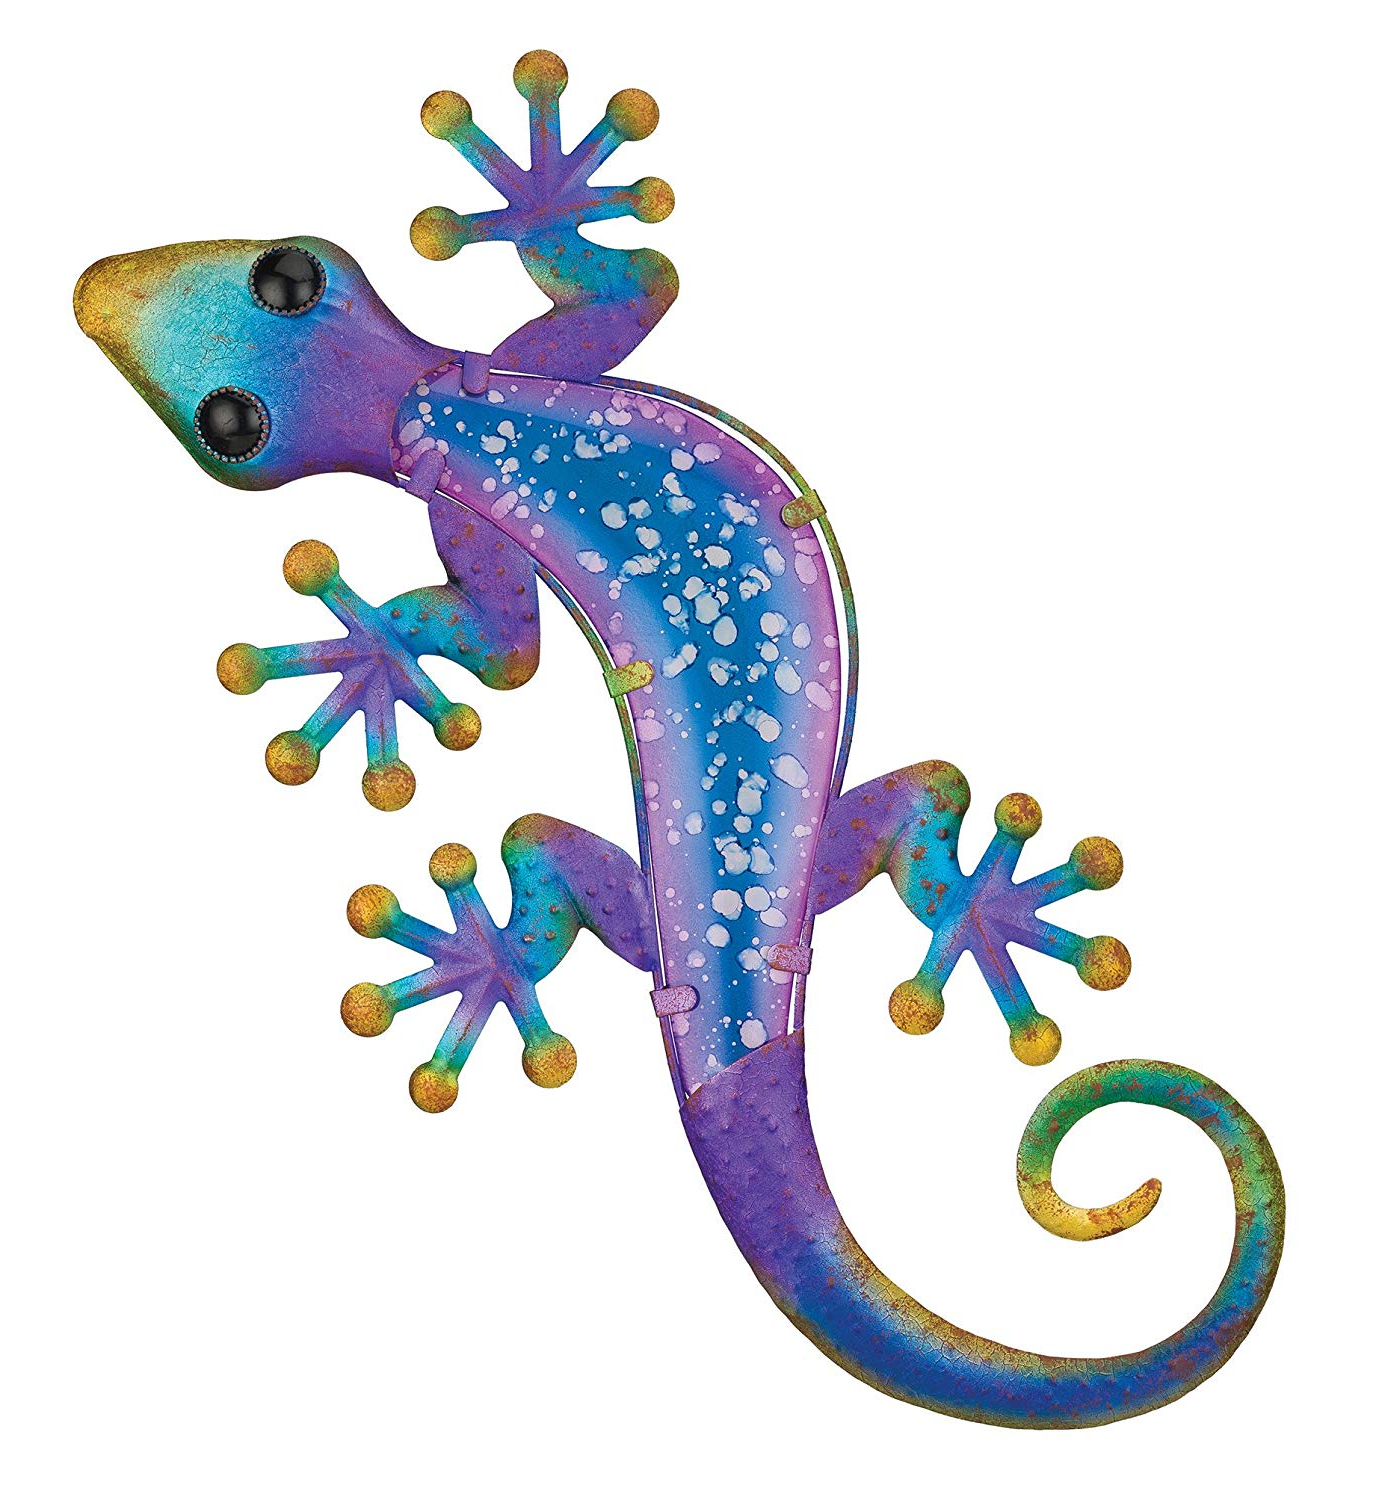 Most Recent Gecko Wall Decor Throughout Amazon: Regal Art & Gift 11349 Watercolor Gecko Wall Decor, 24 (Gallery 3 of 20)